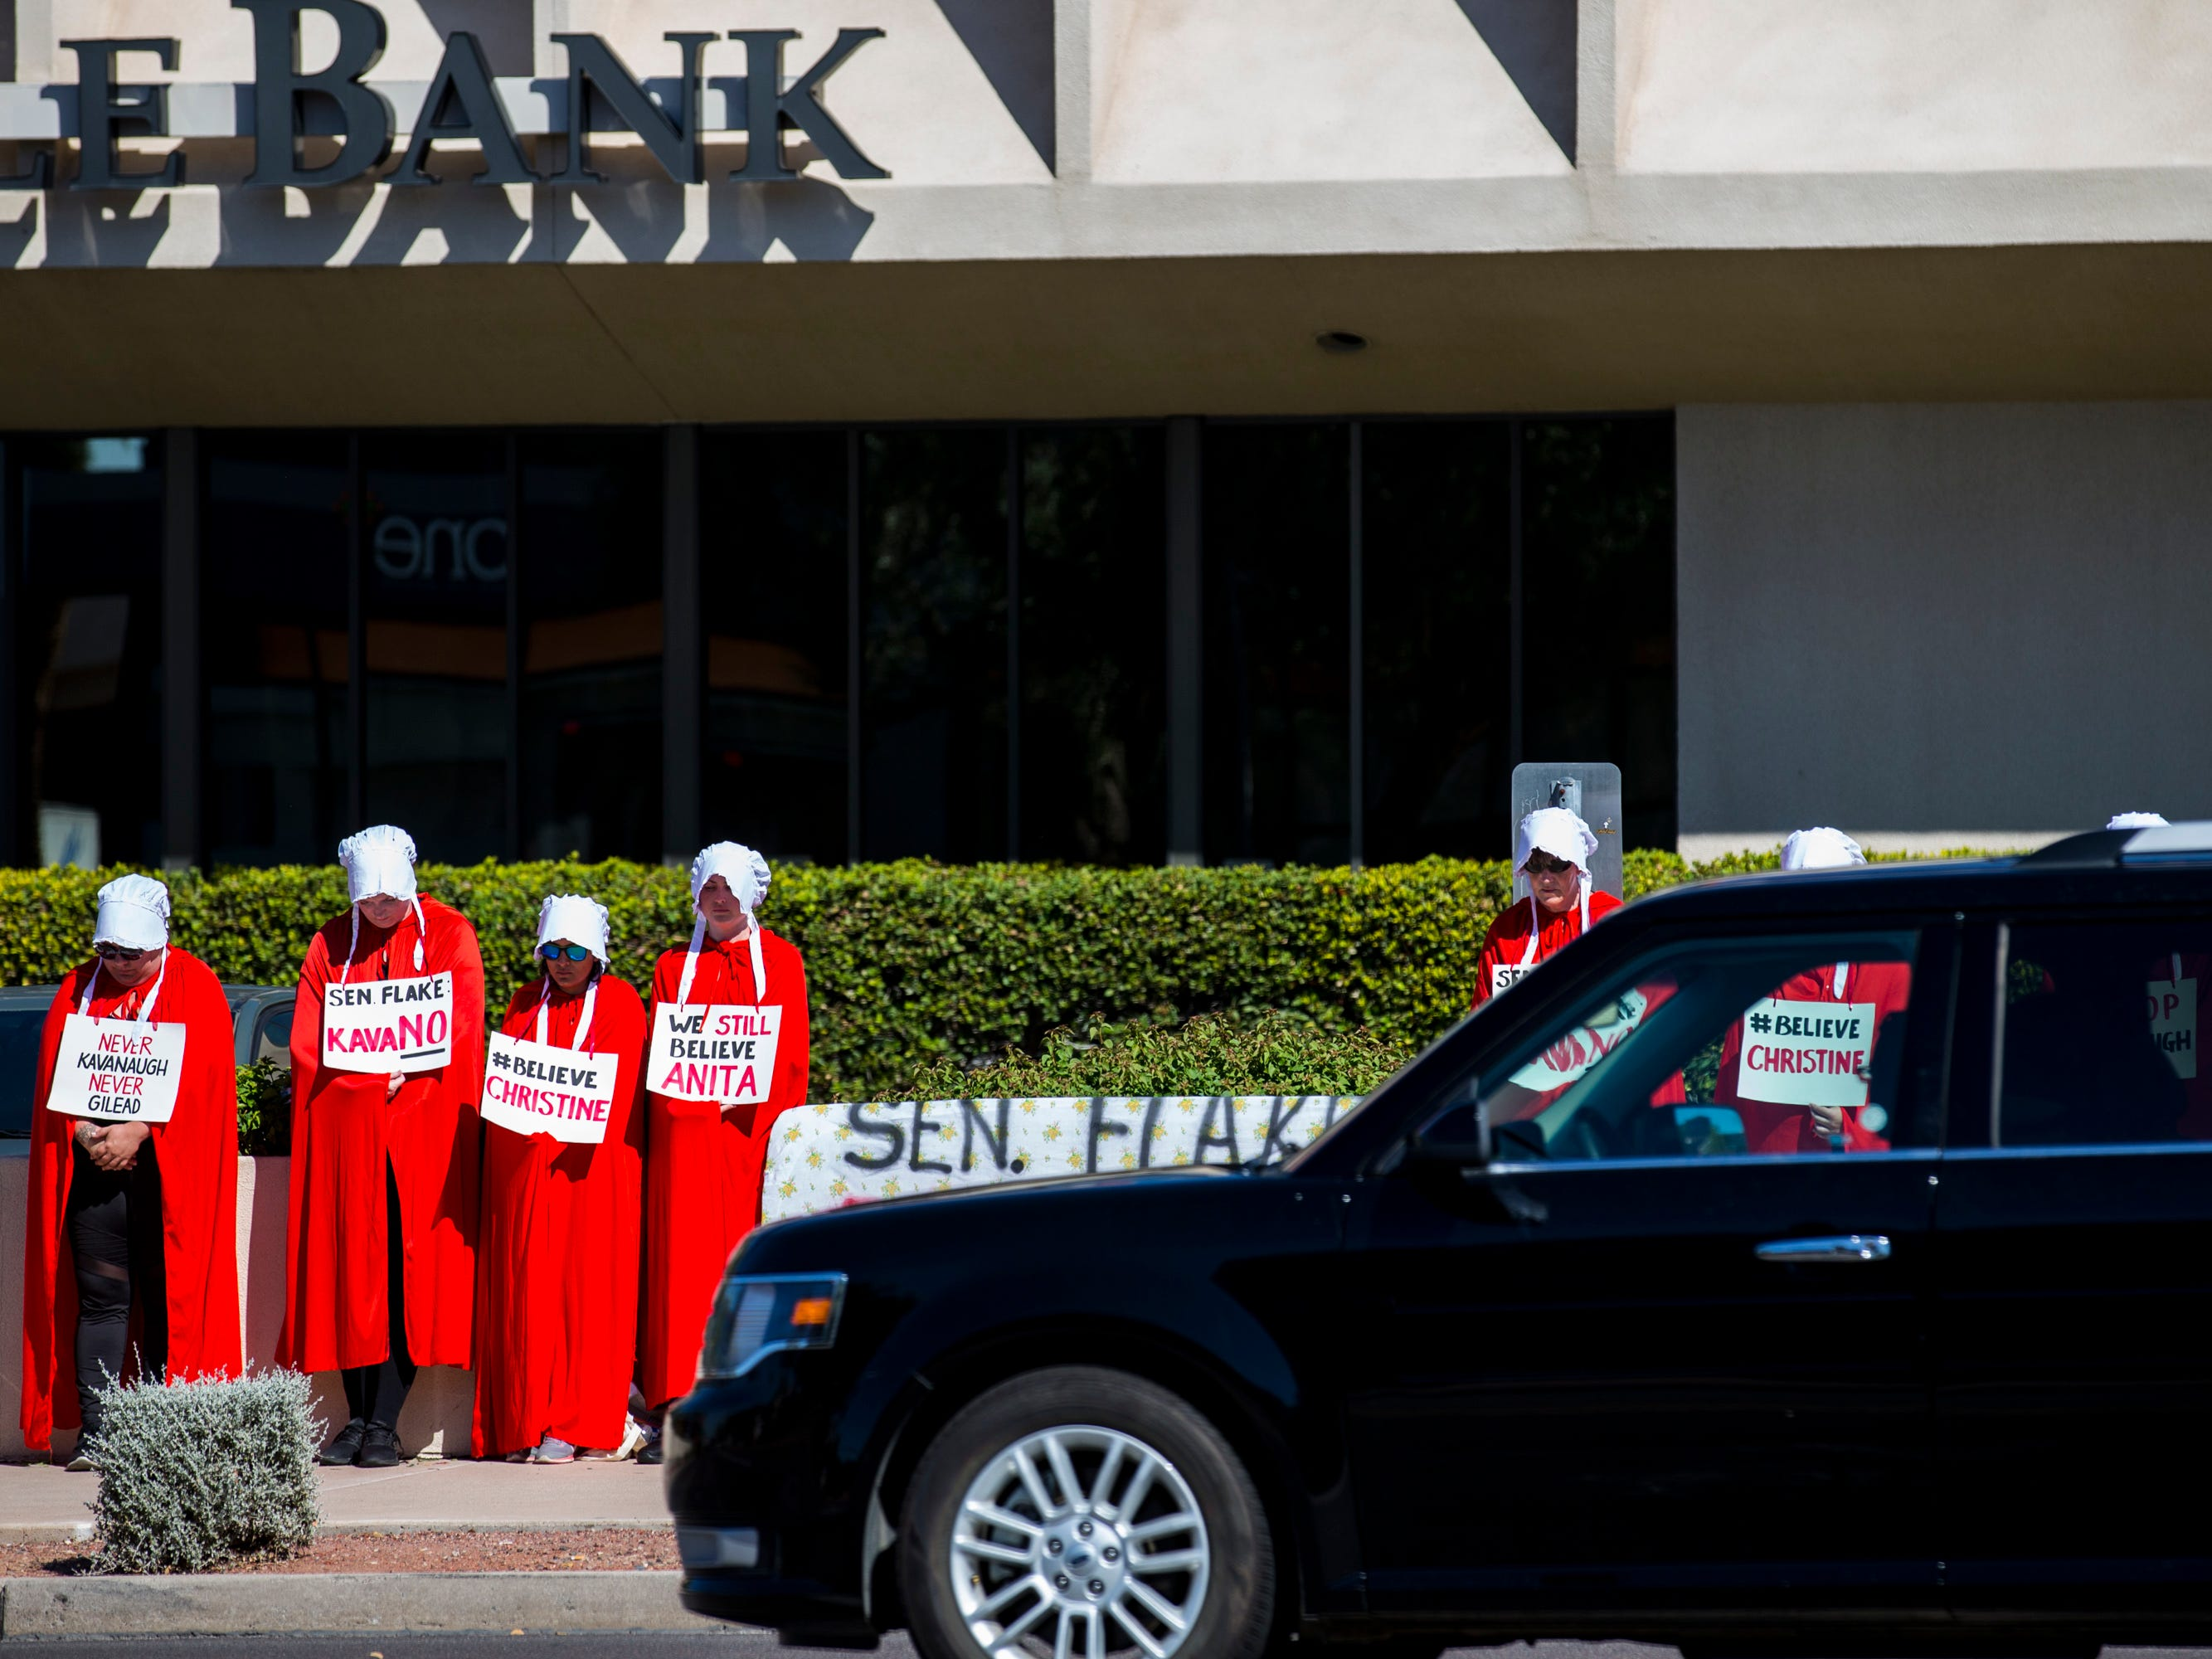 Women dressed as handmaids protest Supreme Court nominee Brett Kavanaugh outside Sen. Jeff Flake's office on Sept. 27, 2018, in Phoenix.